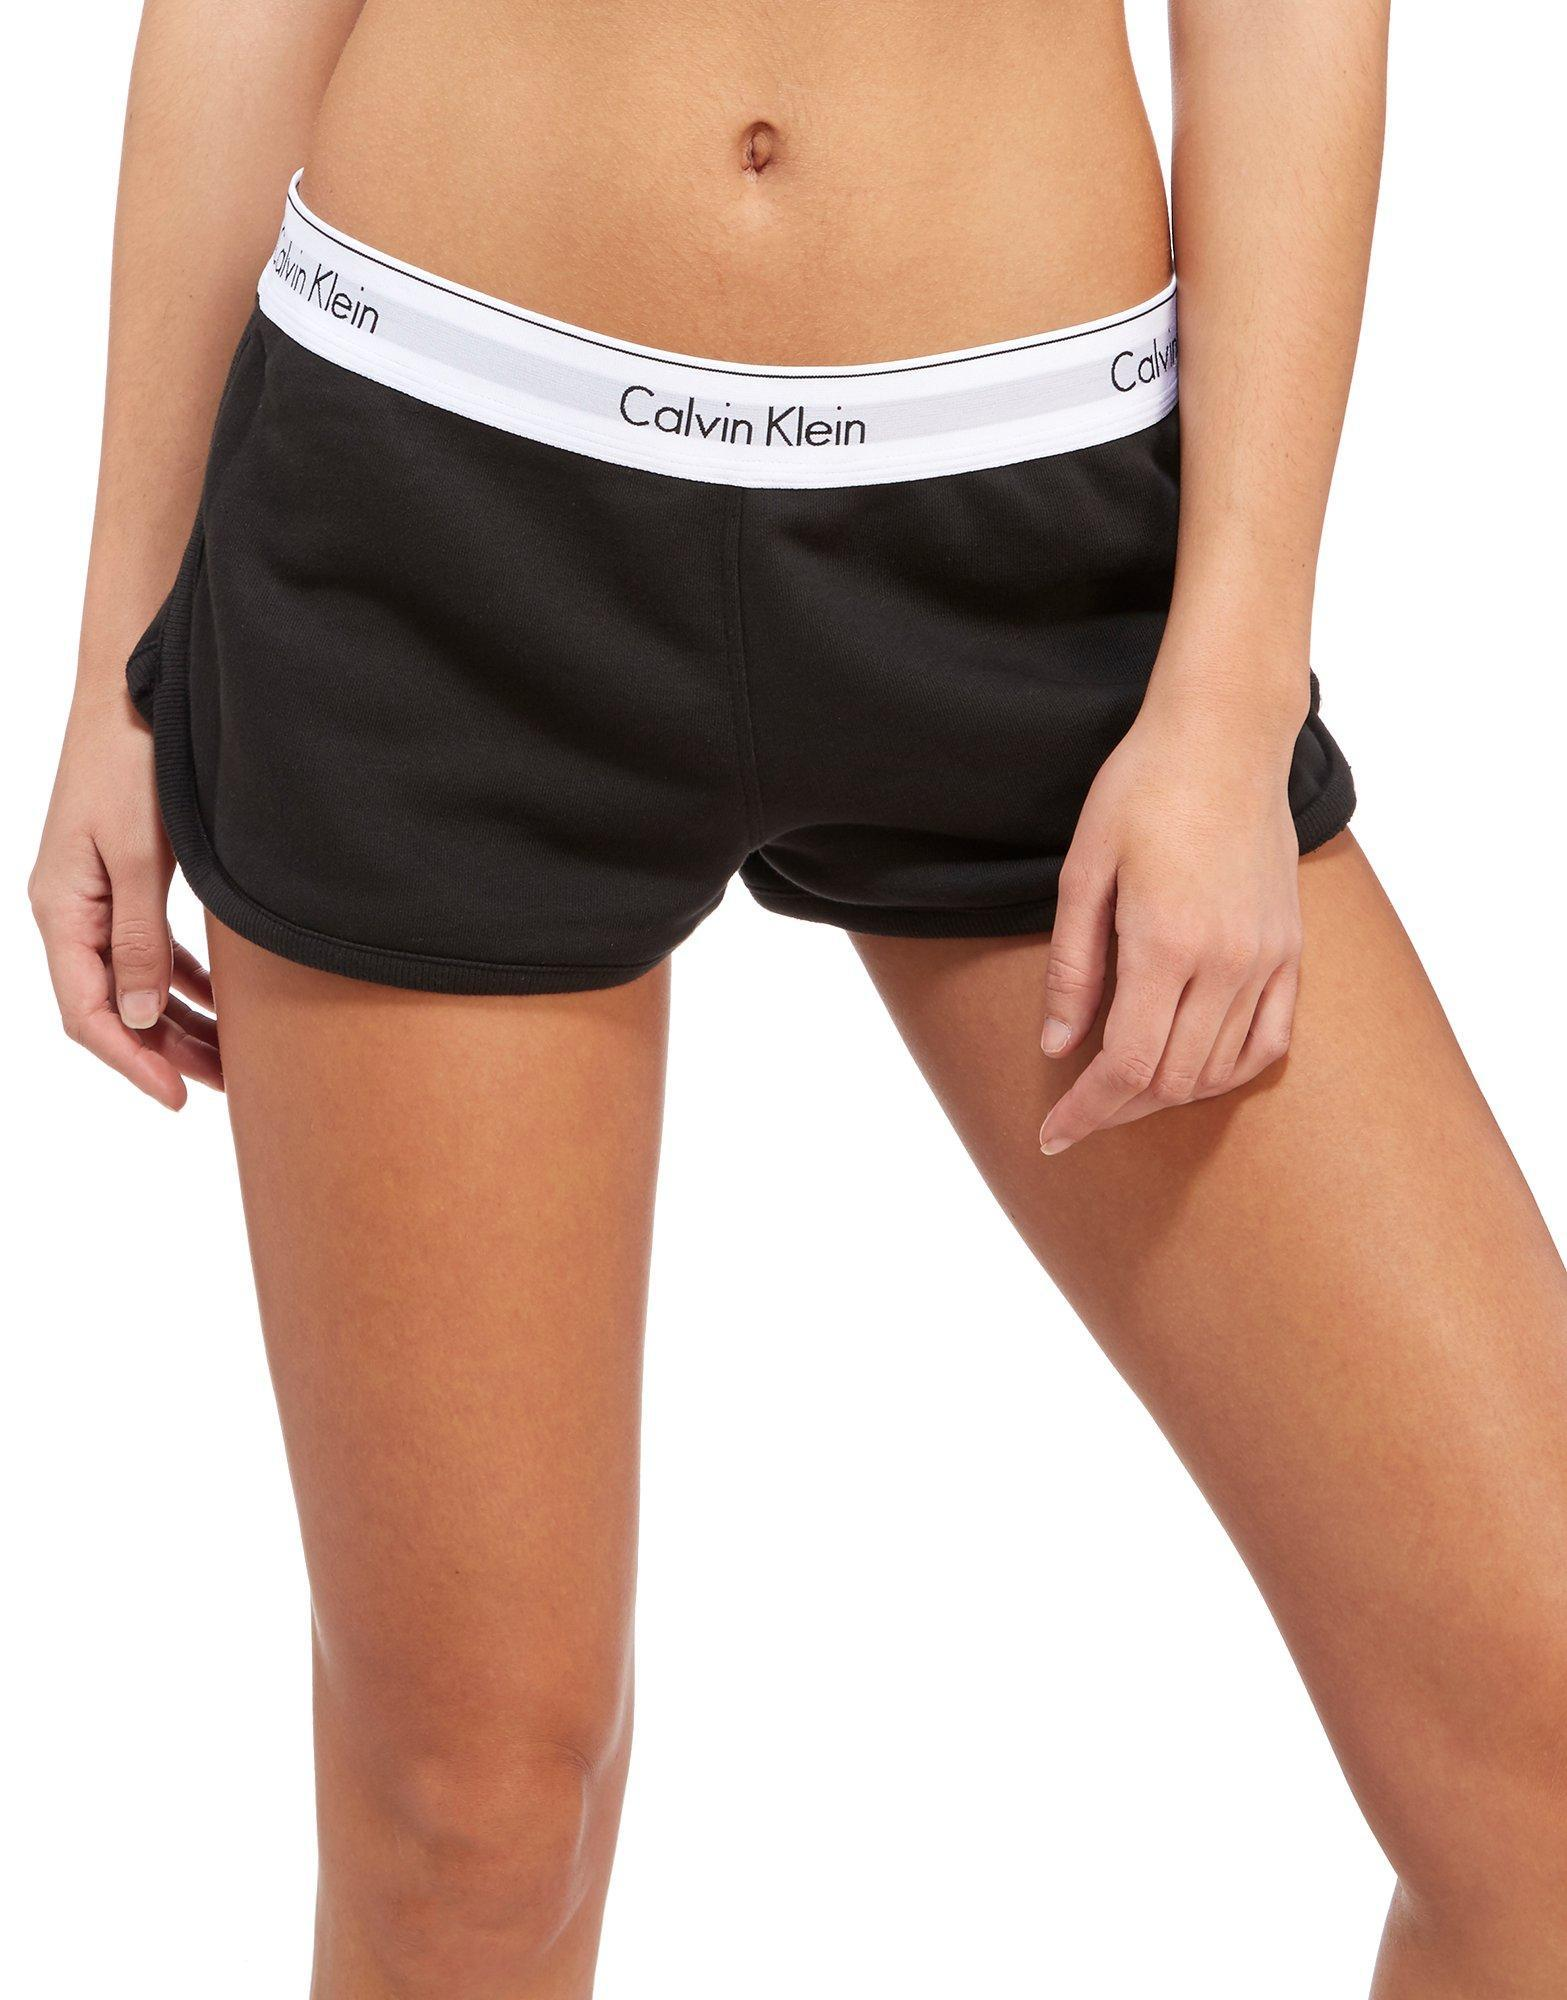 Calvin klein clothing for women